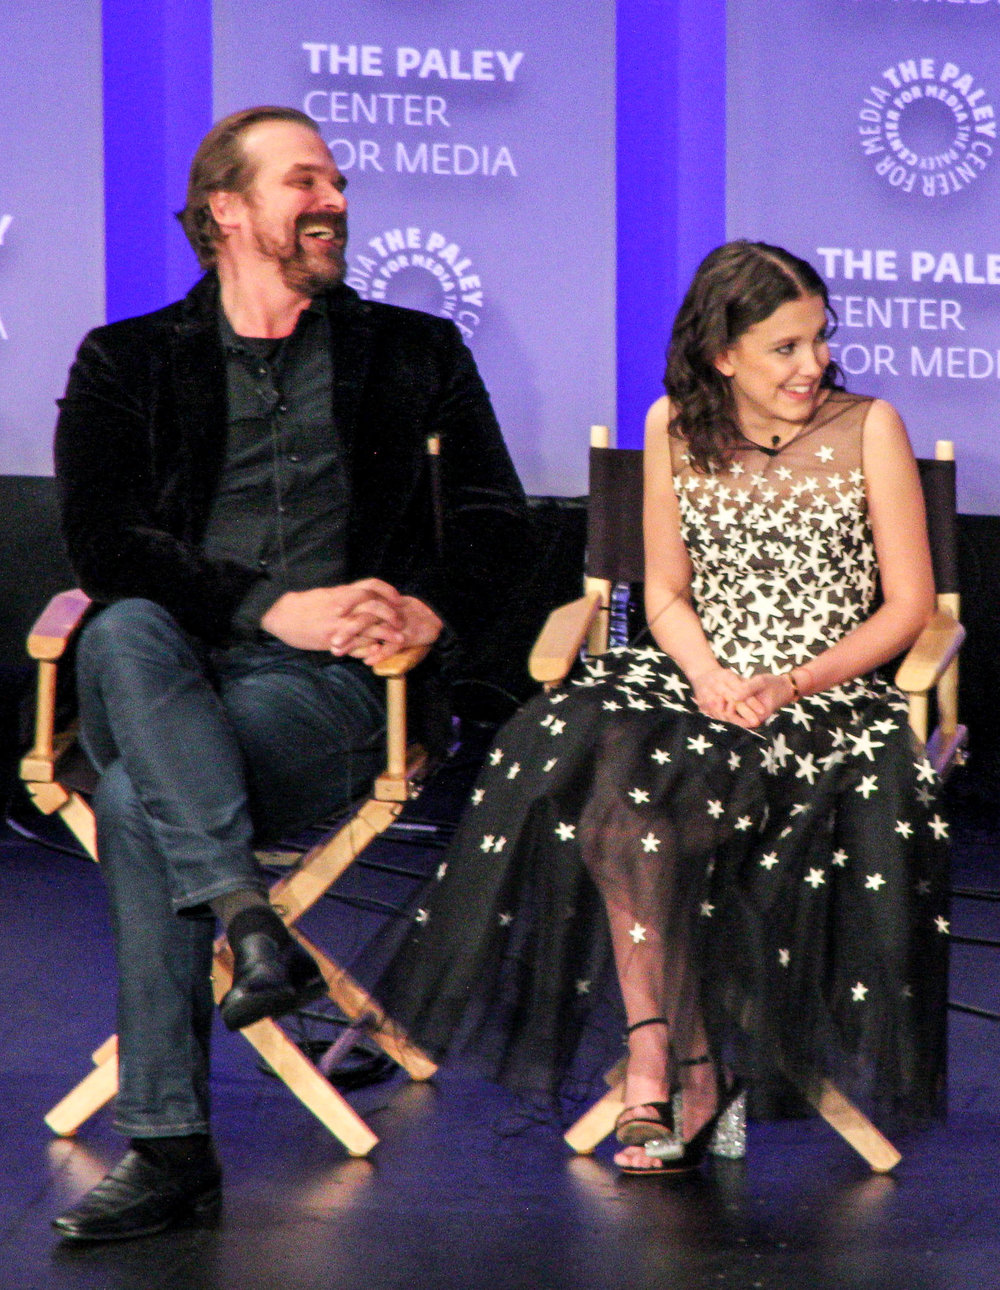 From left to right: David Harbour (Jim Hopper), and Millie Bobby Brown (Eleven/Jane Hopper)